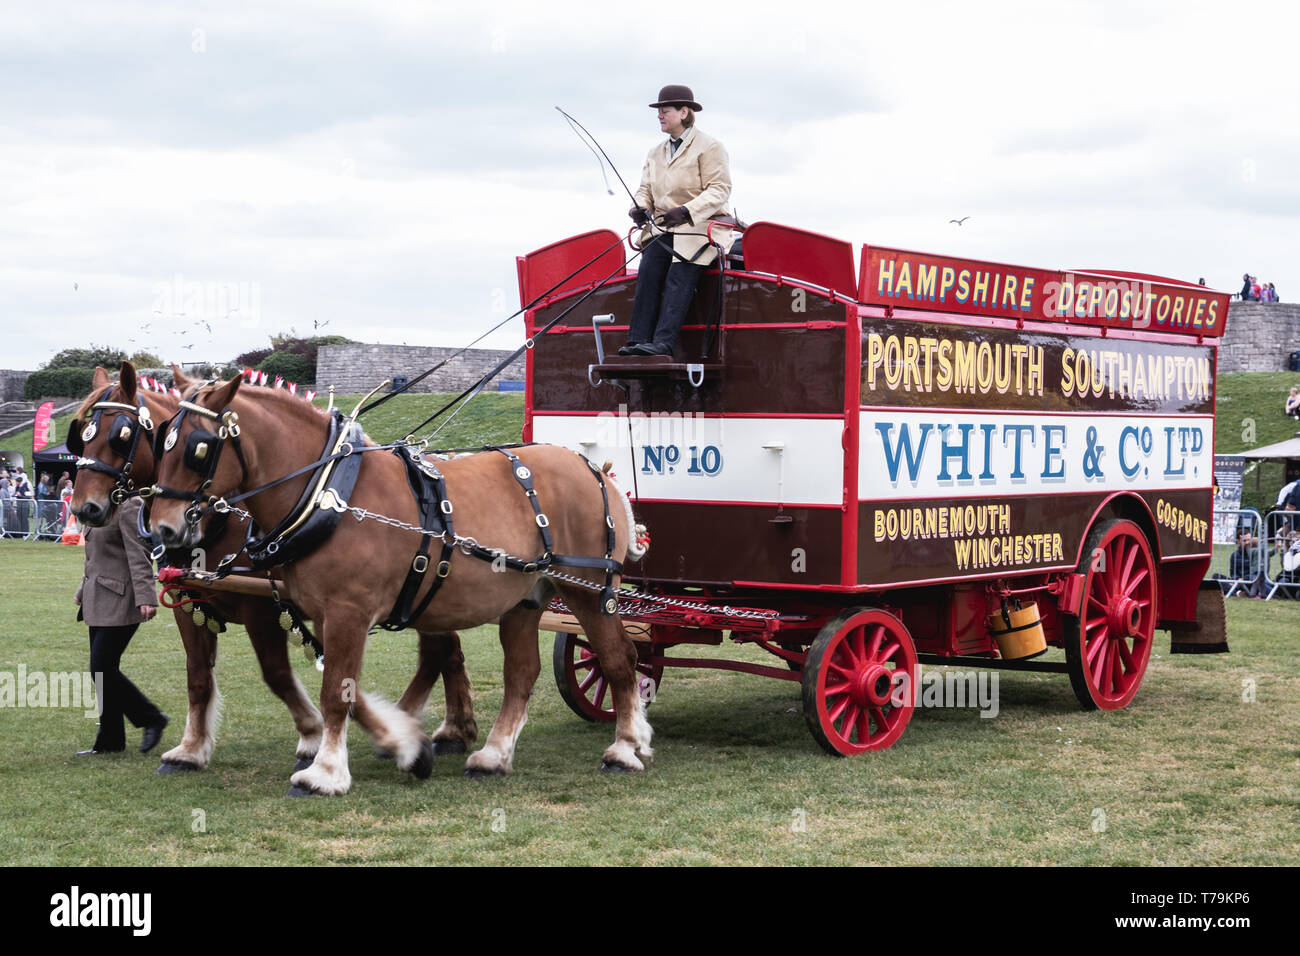 Carriage or trailer being pulled by heavy horses at a horse show in the UK - Stock Image